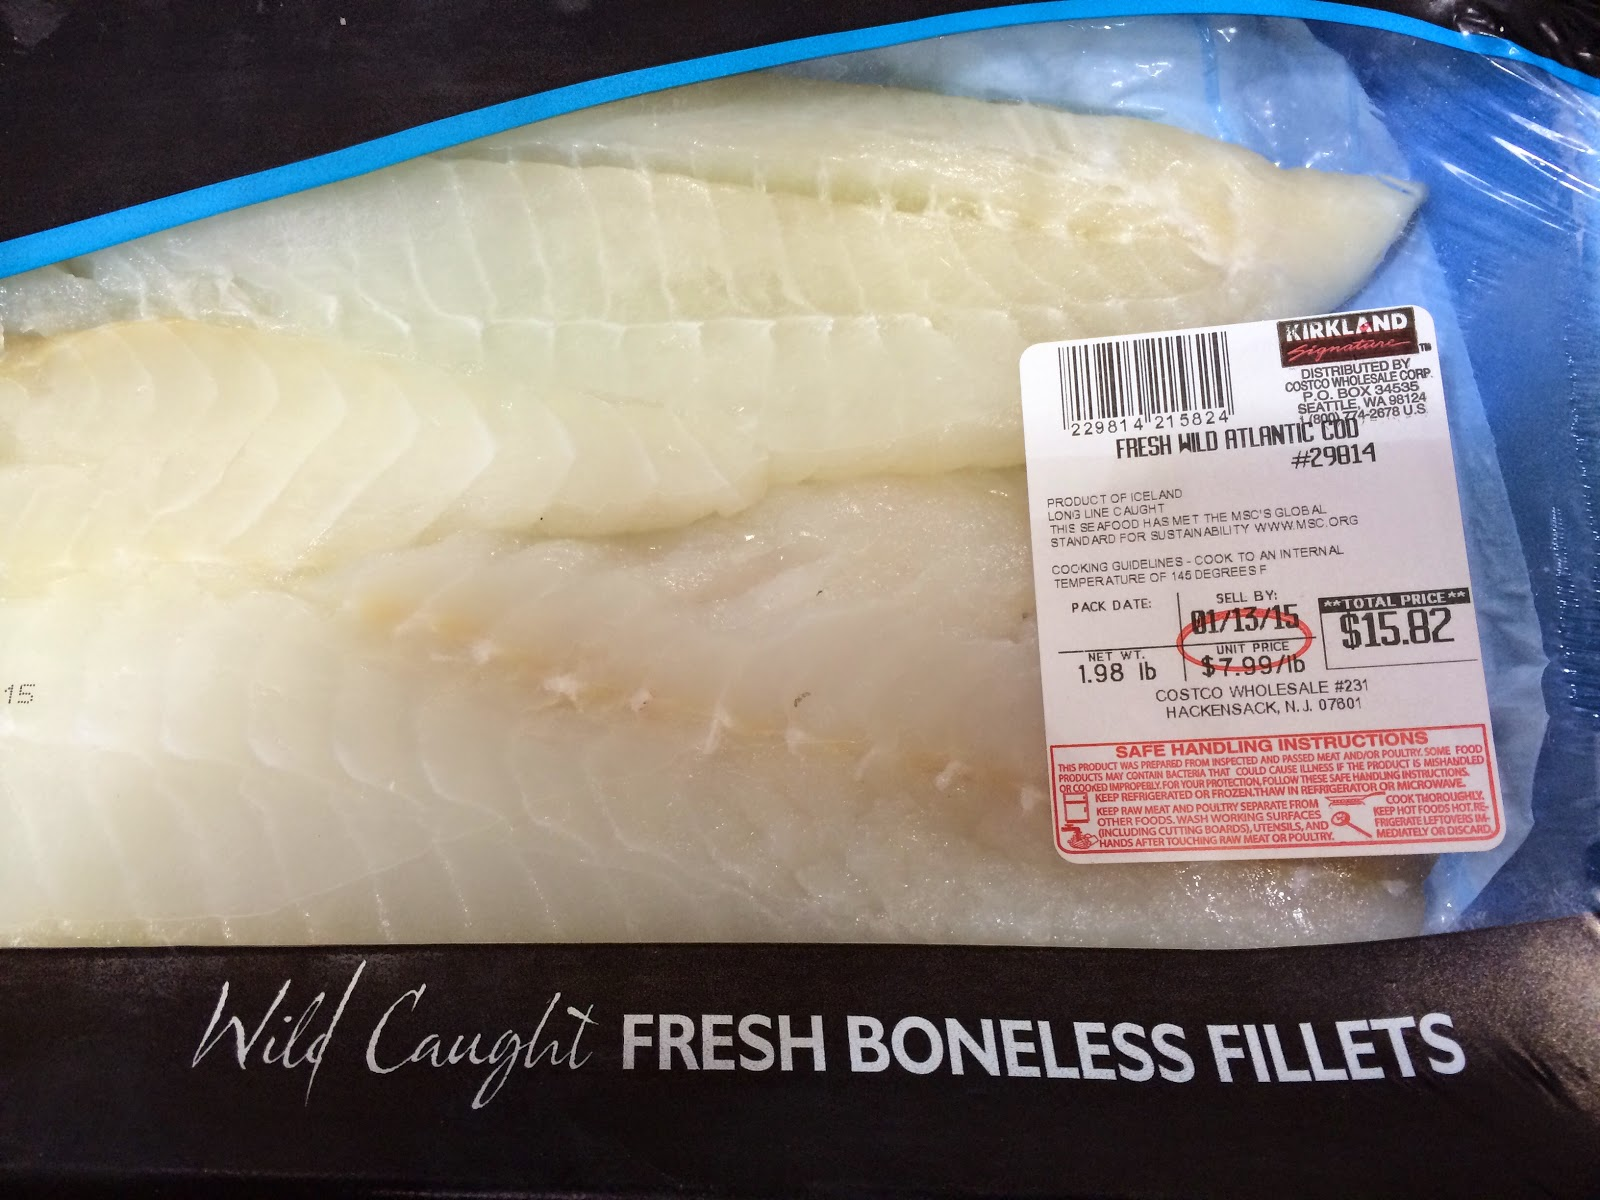 do you really know what you re eating roasted salsa verde is a the boneless skinless fillets of fresh cod are available at costco whole in hackensack for only 7 99 a pound